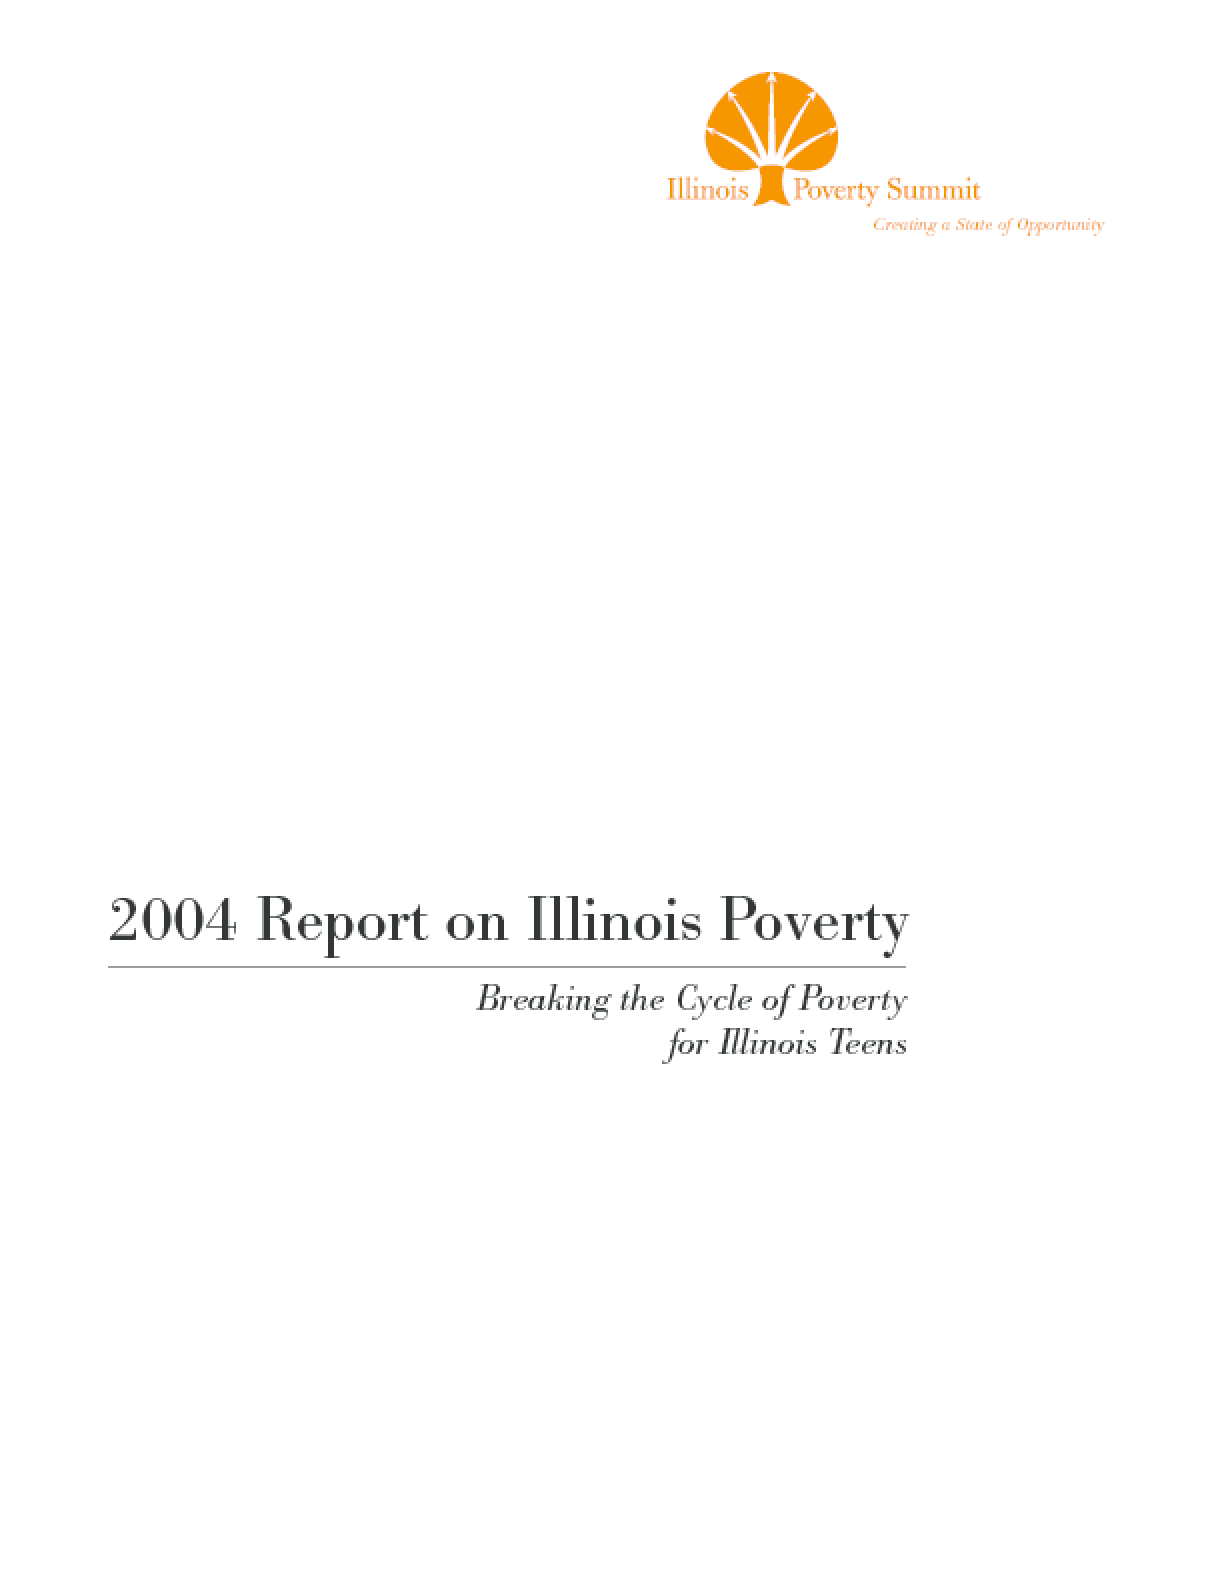 2004 Report on Illinois Poverty: Breaking the Cycle of Poverty for Illinois Teens